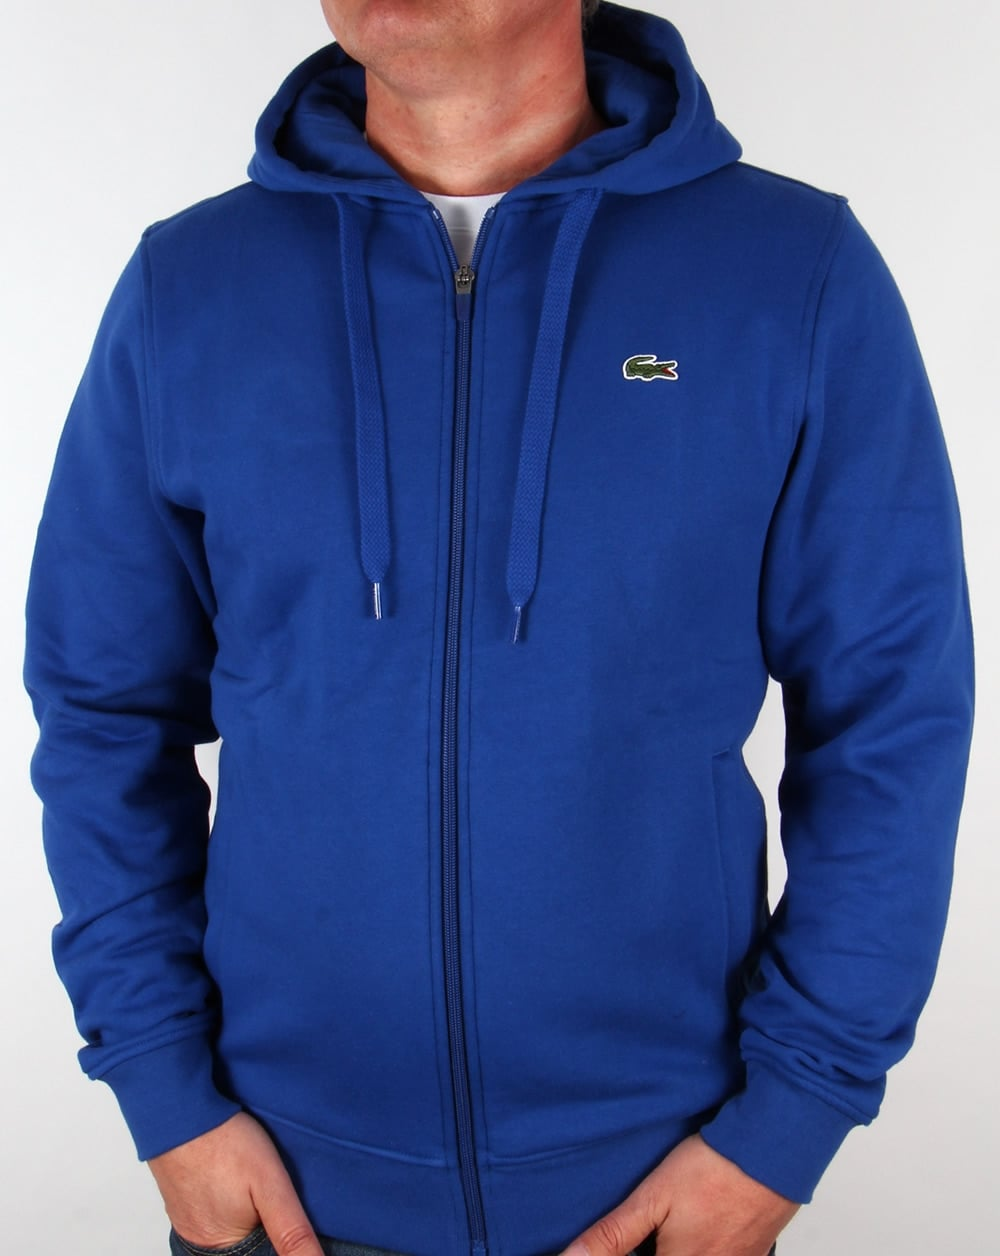 We have a variety of Blue Sweatshirts & Hoodies and hoodies to fit your fashion needs. Tell the world how you feel or rock a funny saying with your outerwear. Blue Sweatshirts & Hoodies and hoodies are great gifts for any occasion.